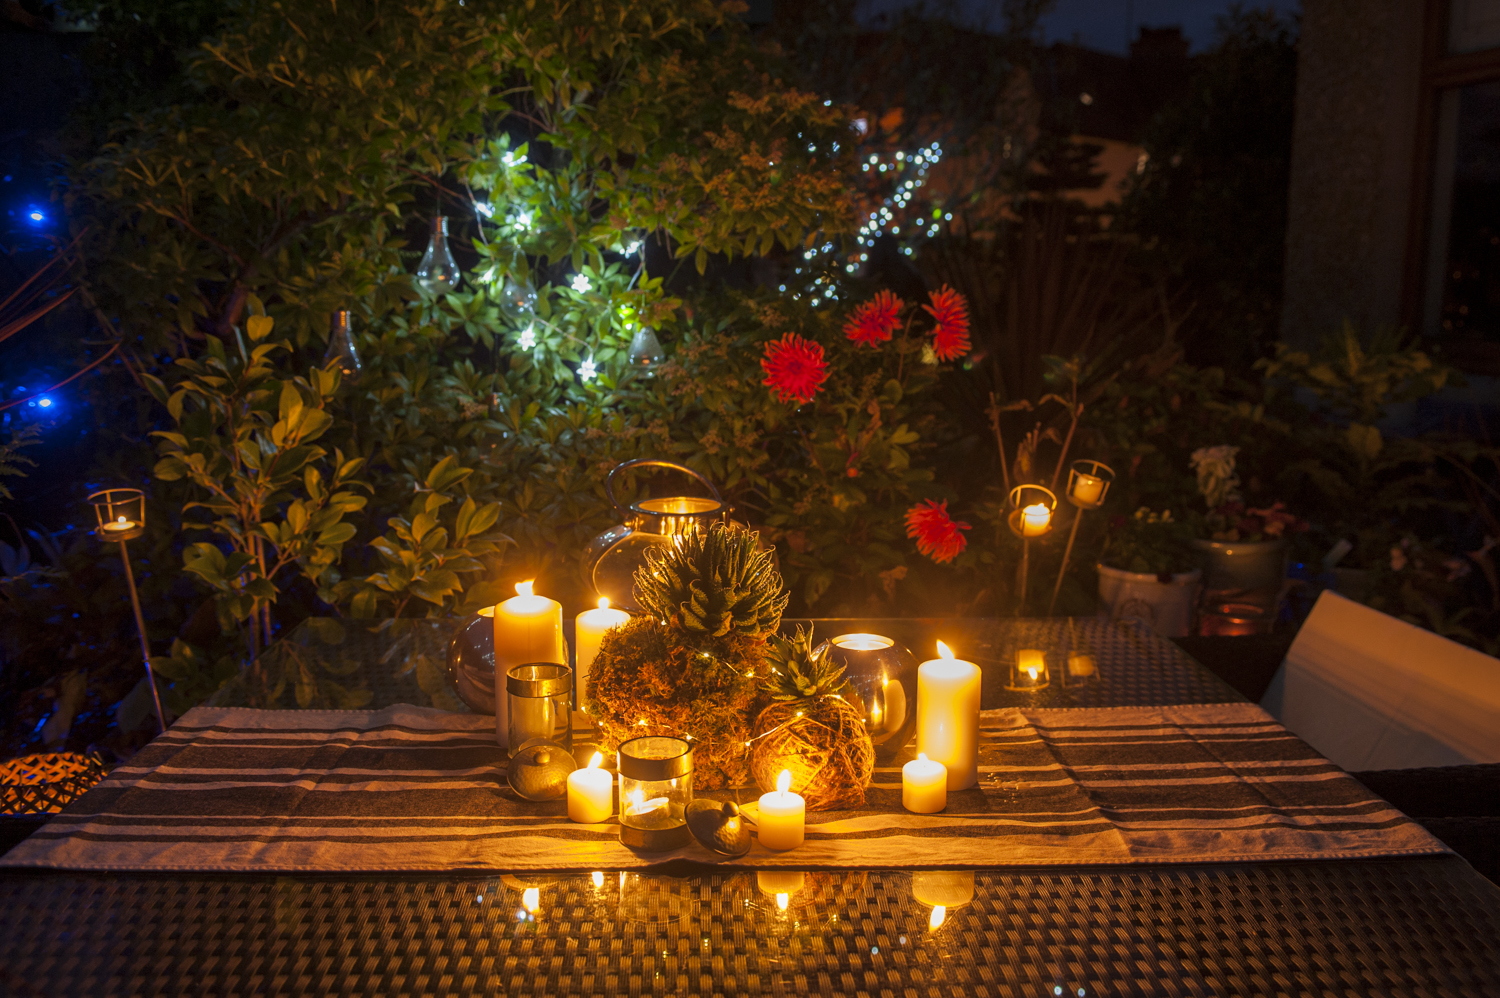 pots-and-pateriors-winter-table-setting-outdoor-living-space-candles-kokedama.JPG